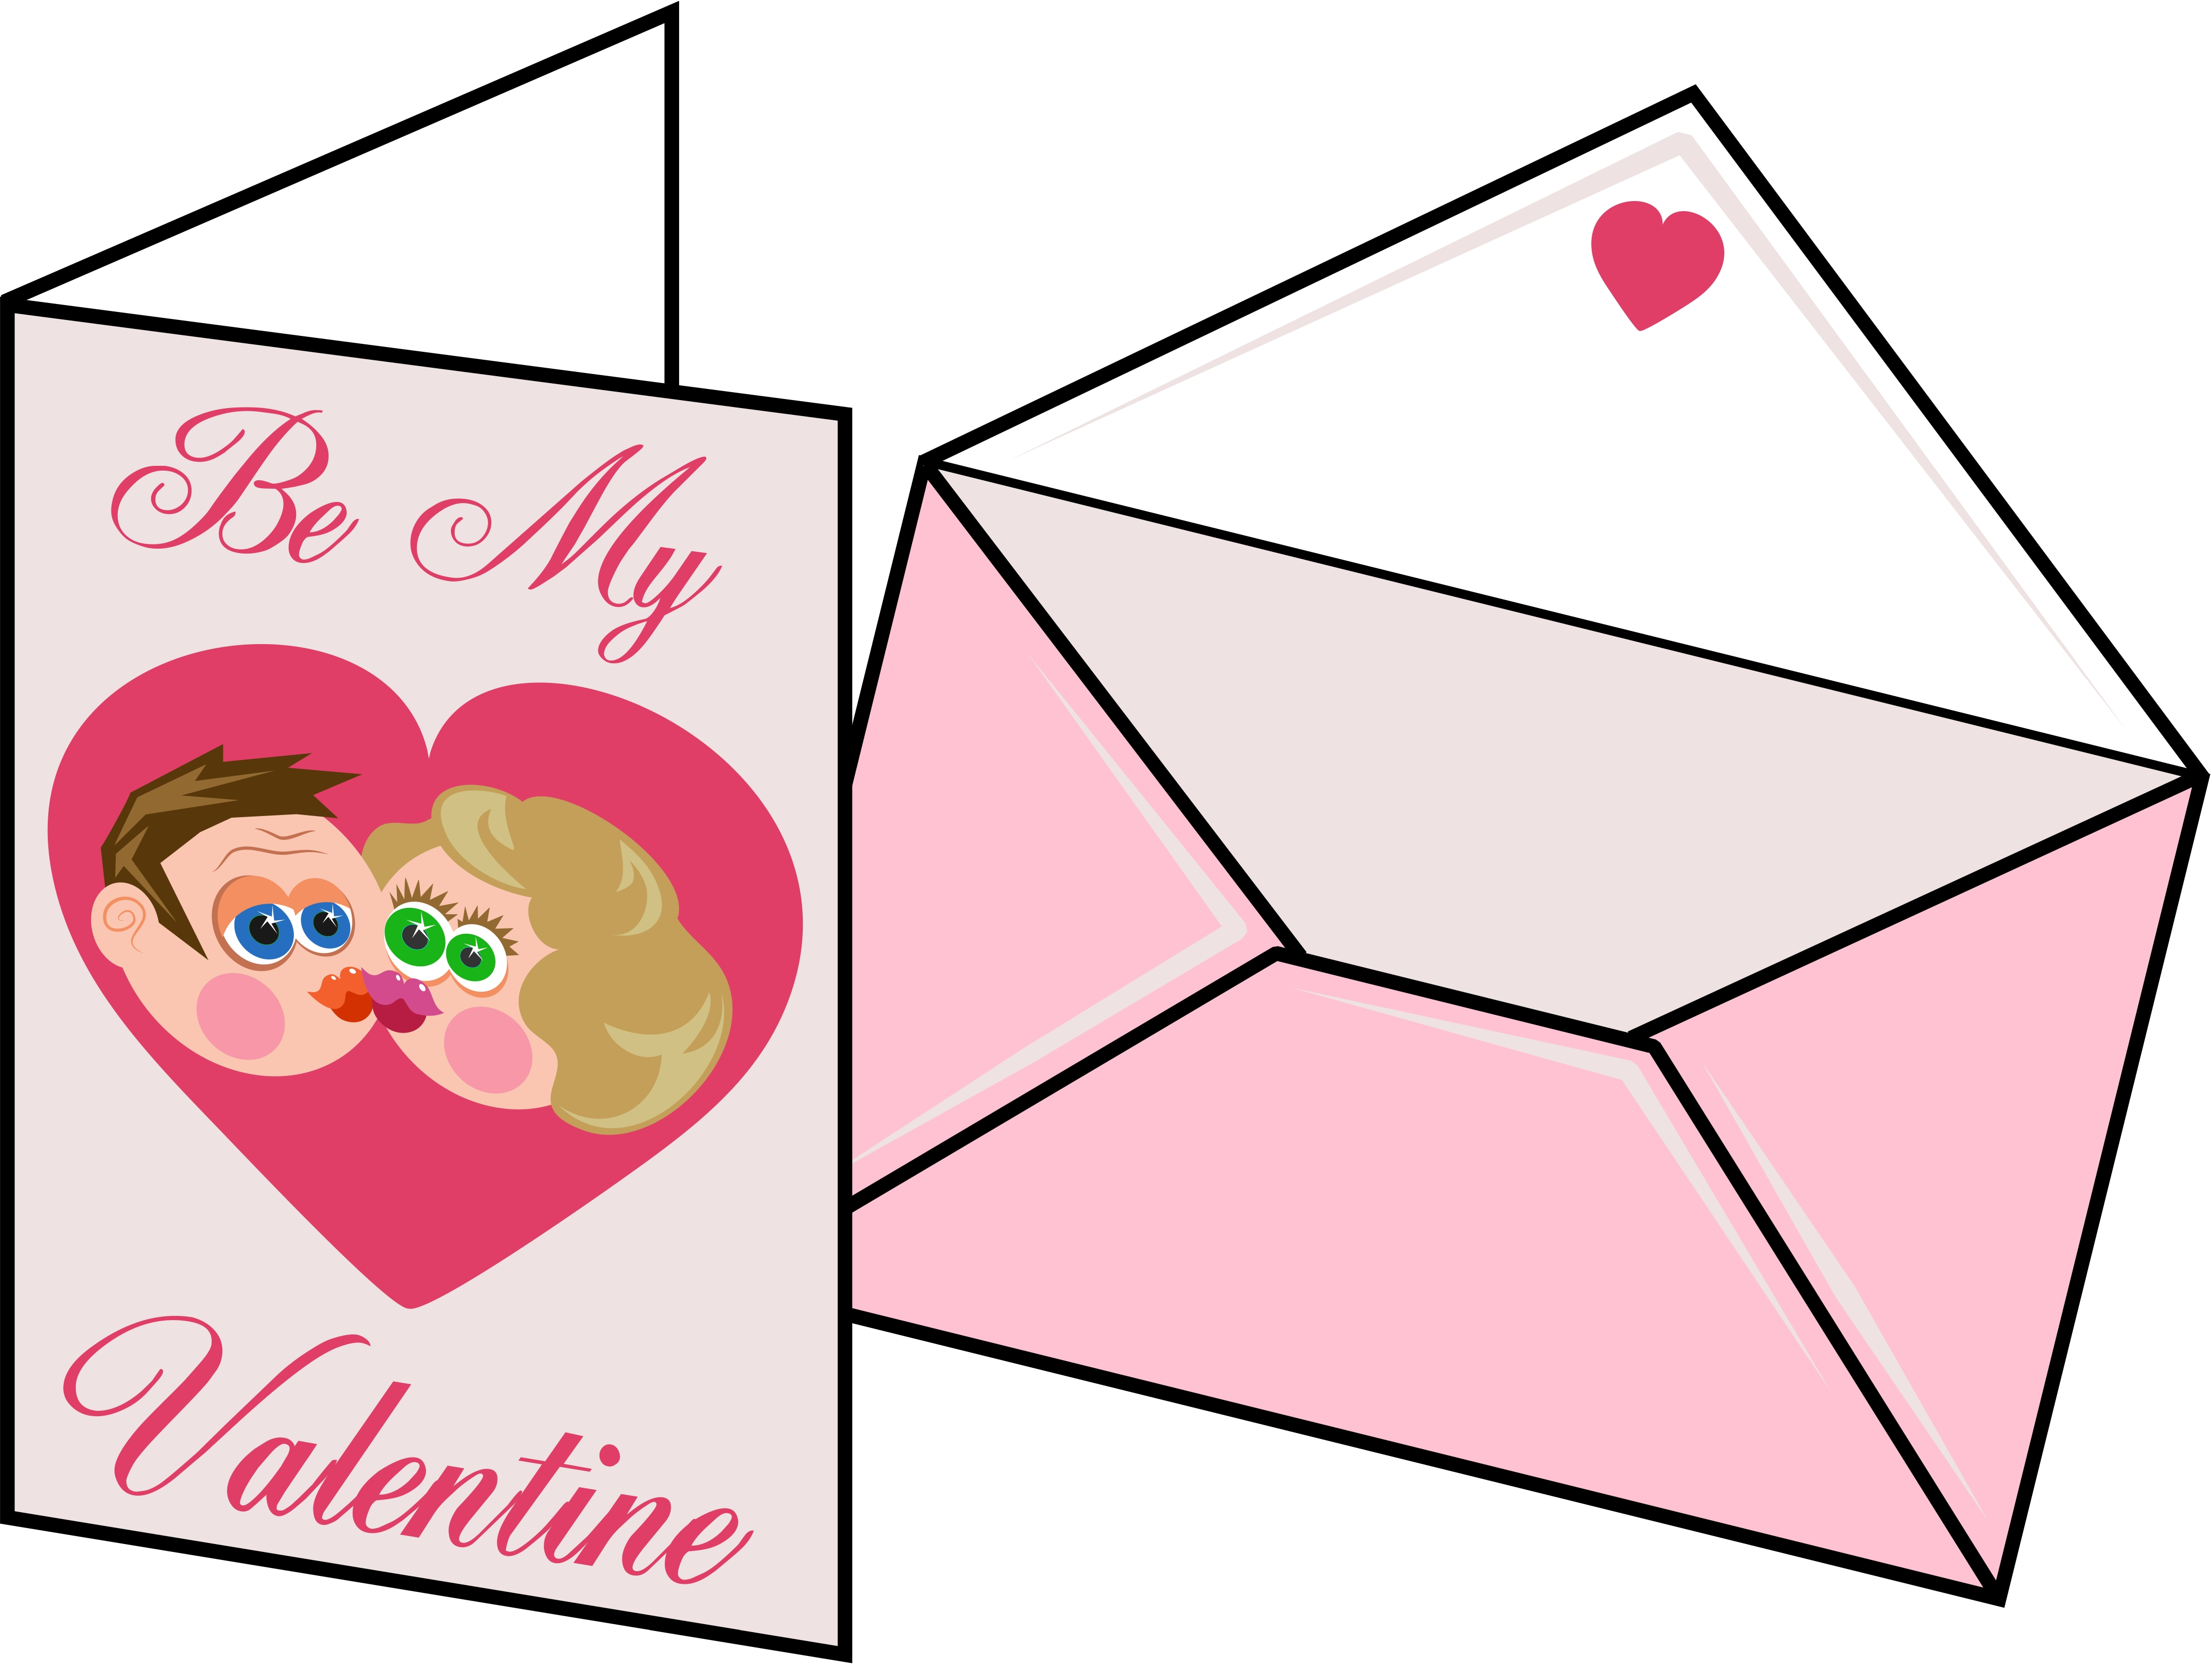 Valentines Card Free Images At Clker Com Vector Clip Art Online